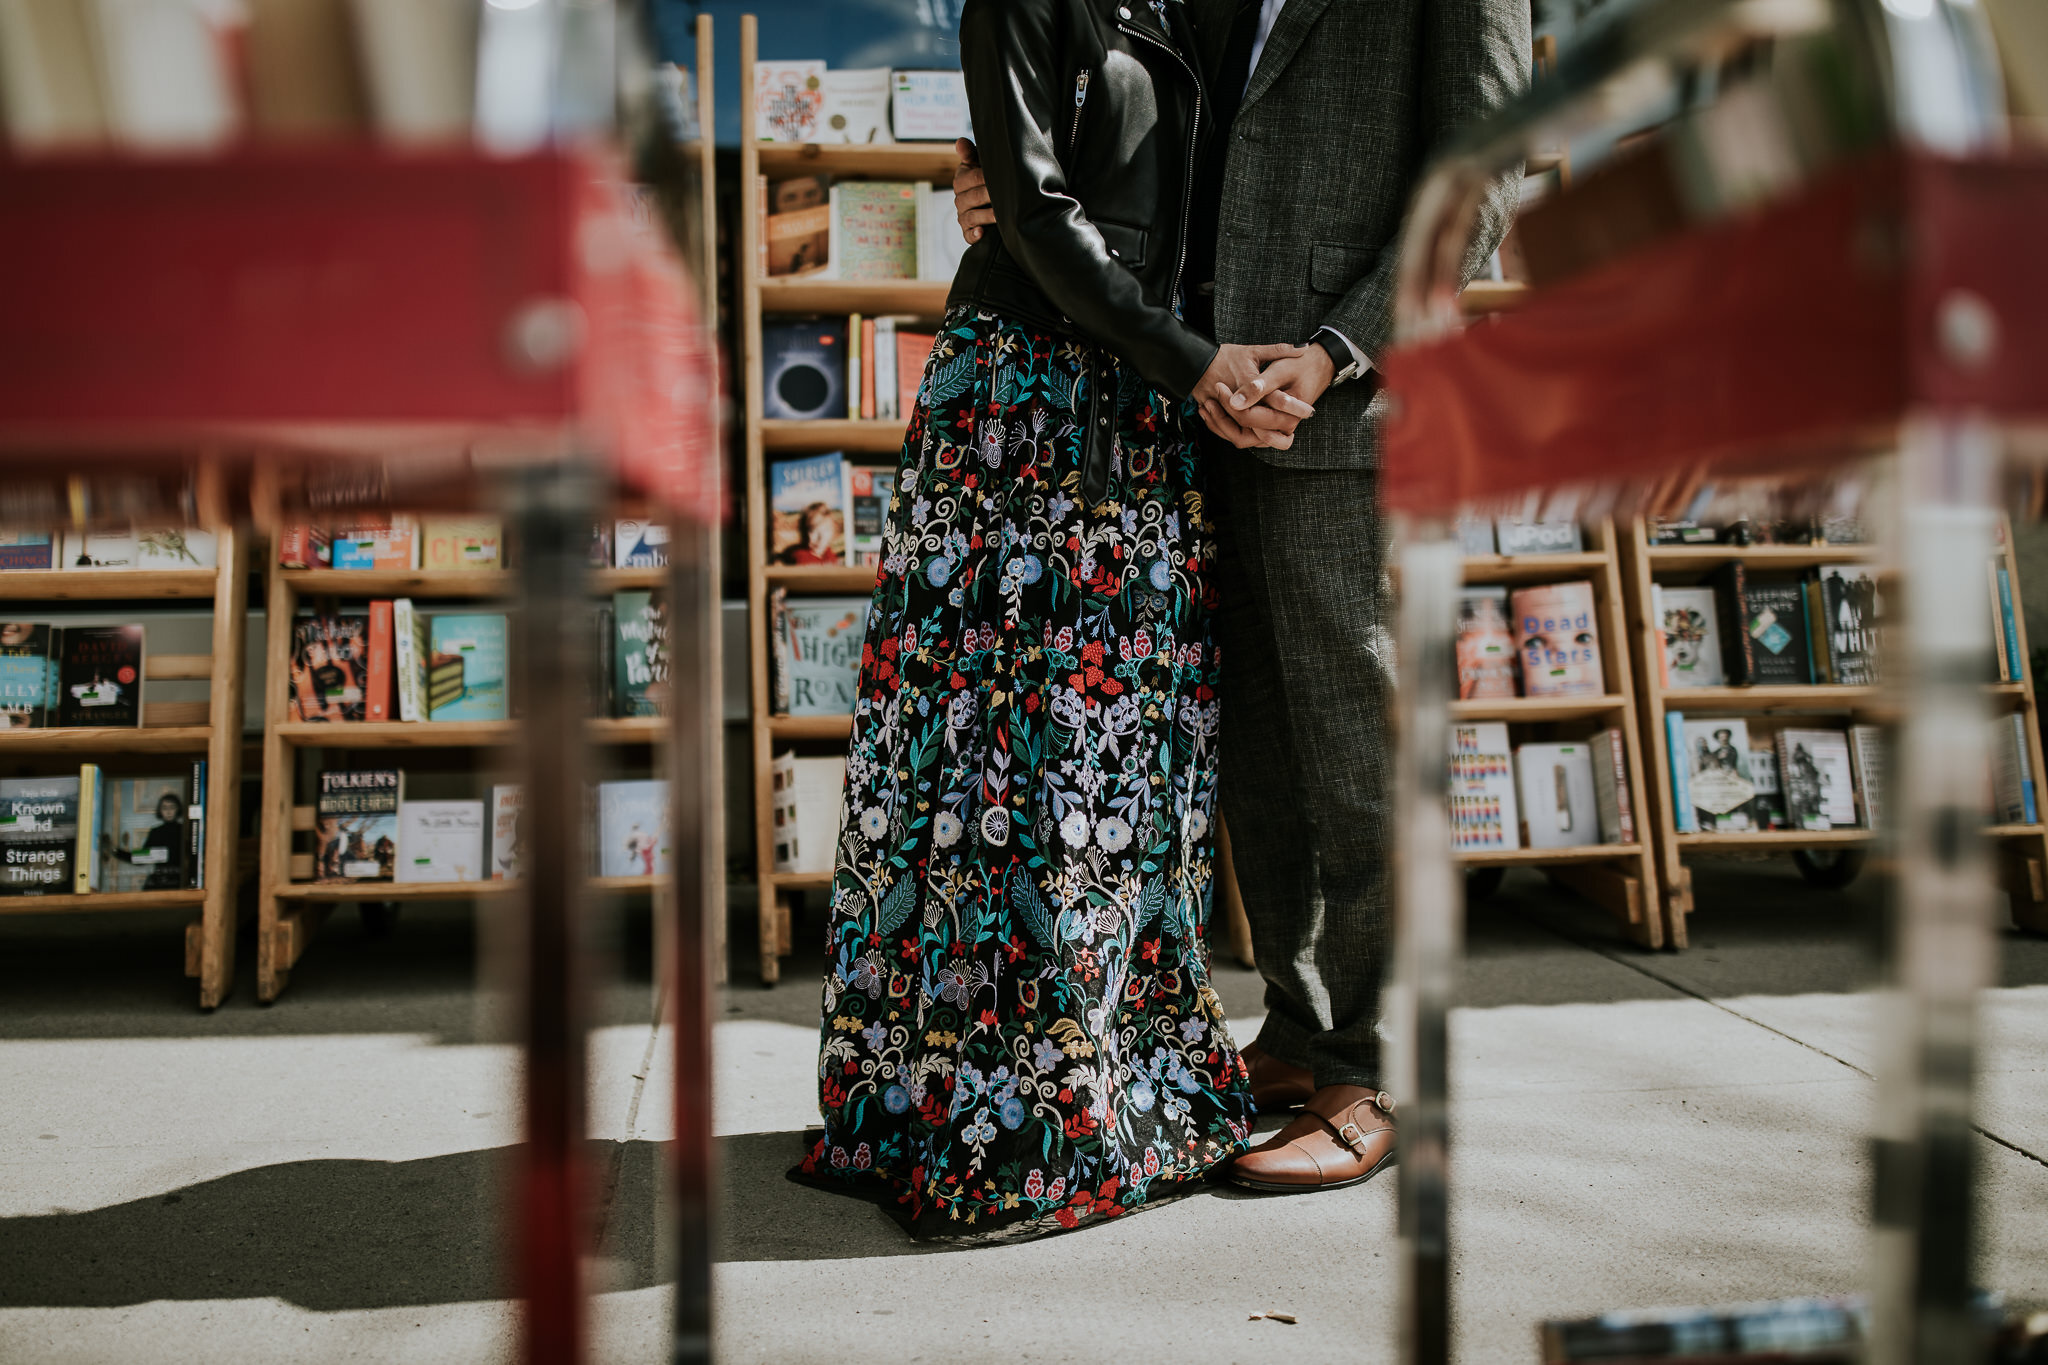 Bride and groom holding hands in urban wedding photos near bookstore downtown Calgary